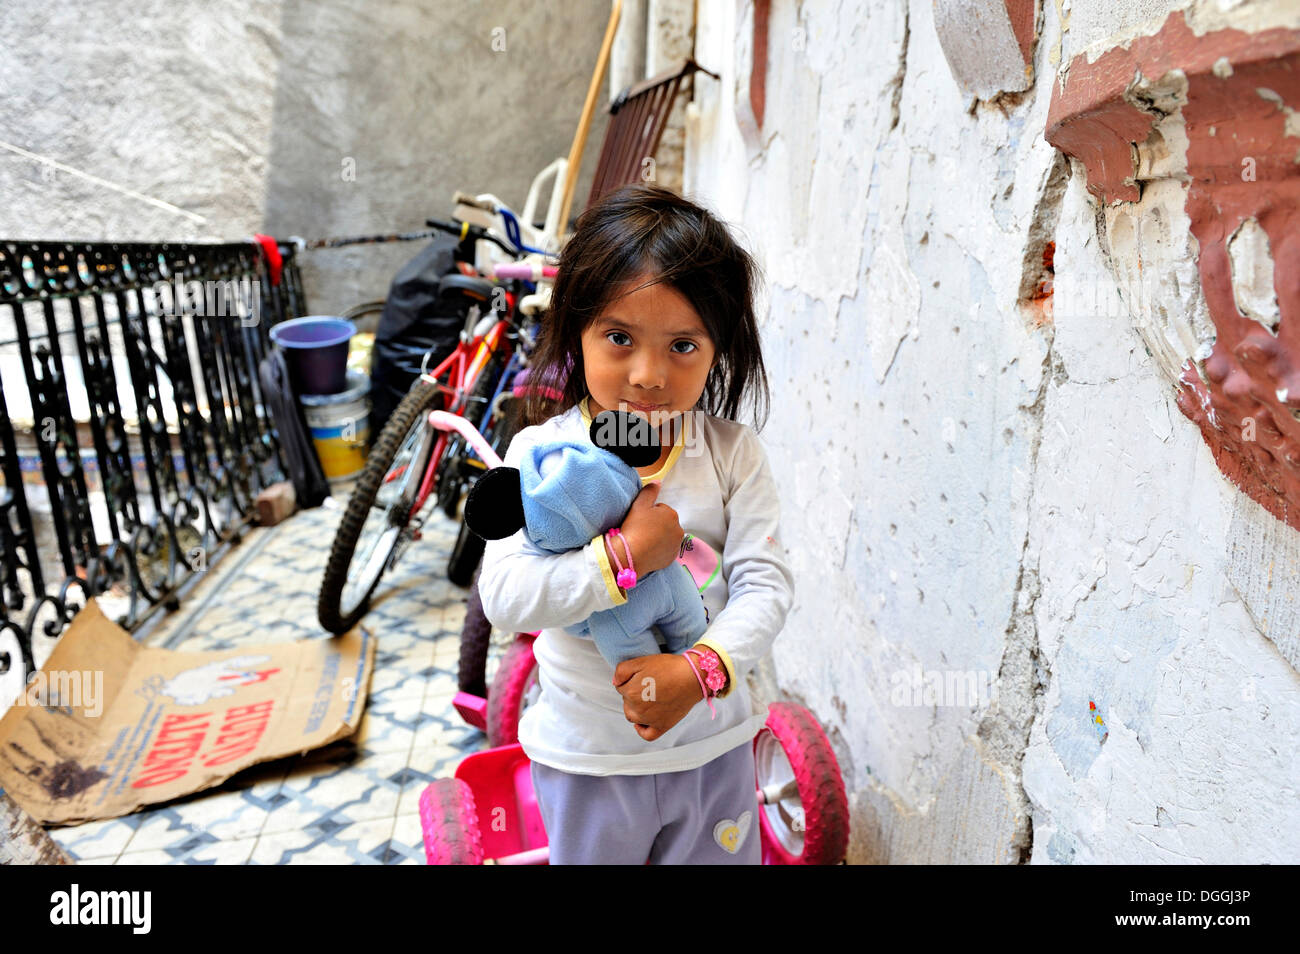 Indigenous girl with a stuffed animal, living with her community in a dilapidated house from the colonial period in the centre - Stock Image